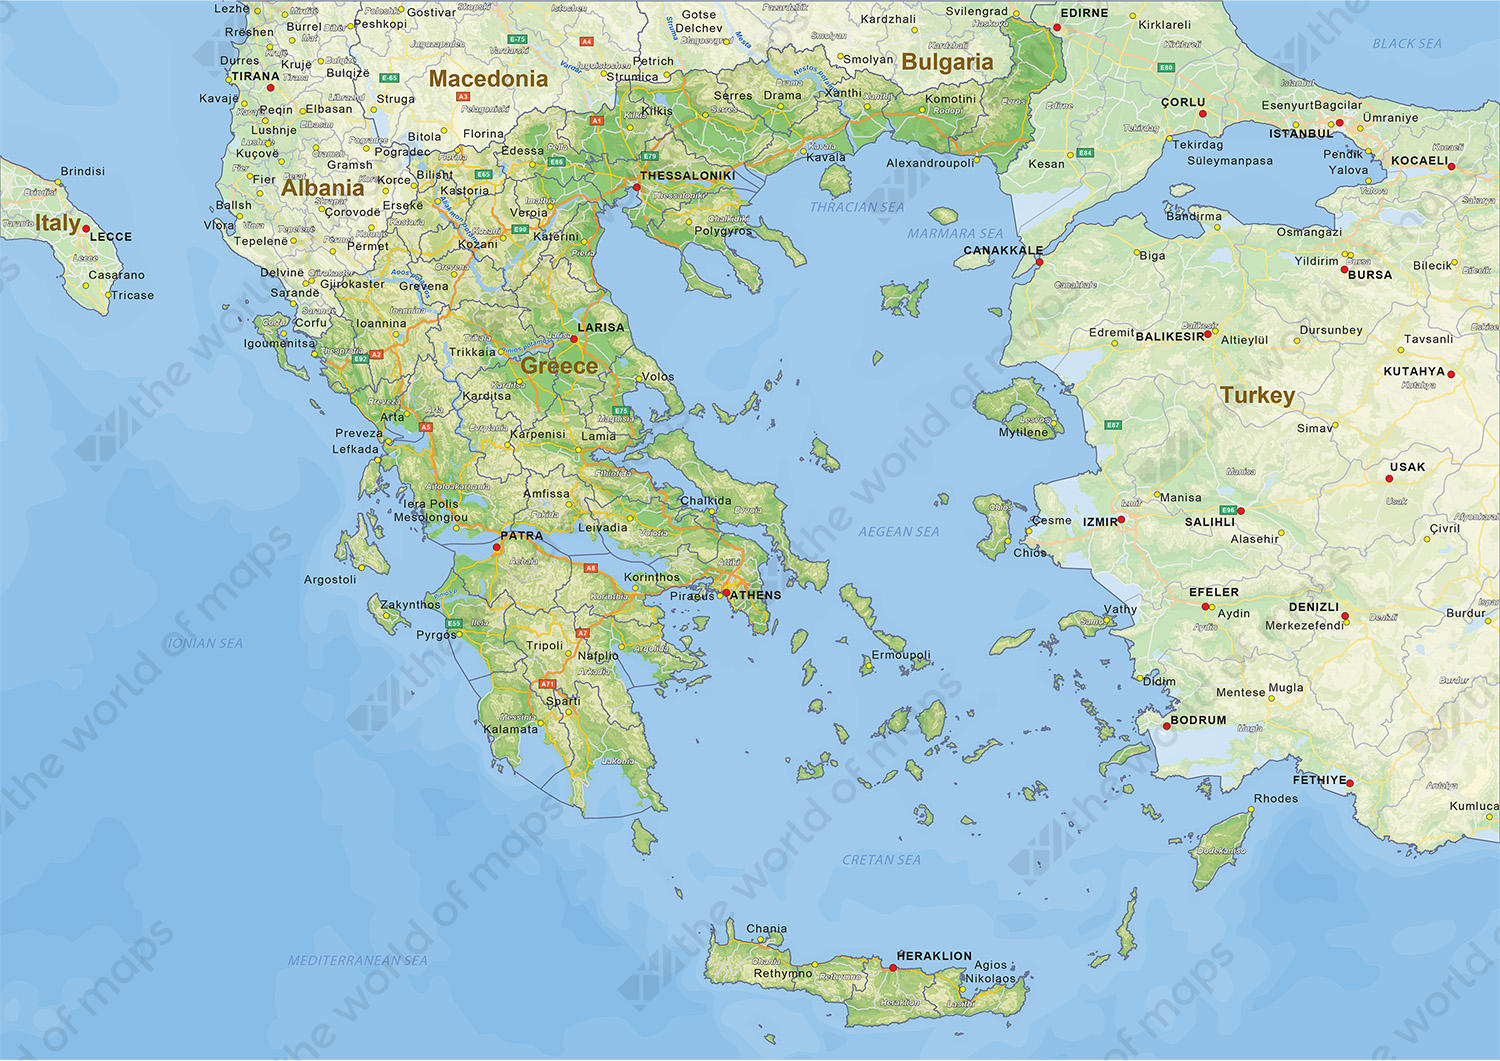 Digital physical map of Greece 1435 | The World of Maps.com